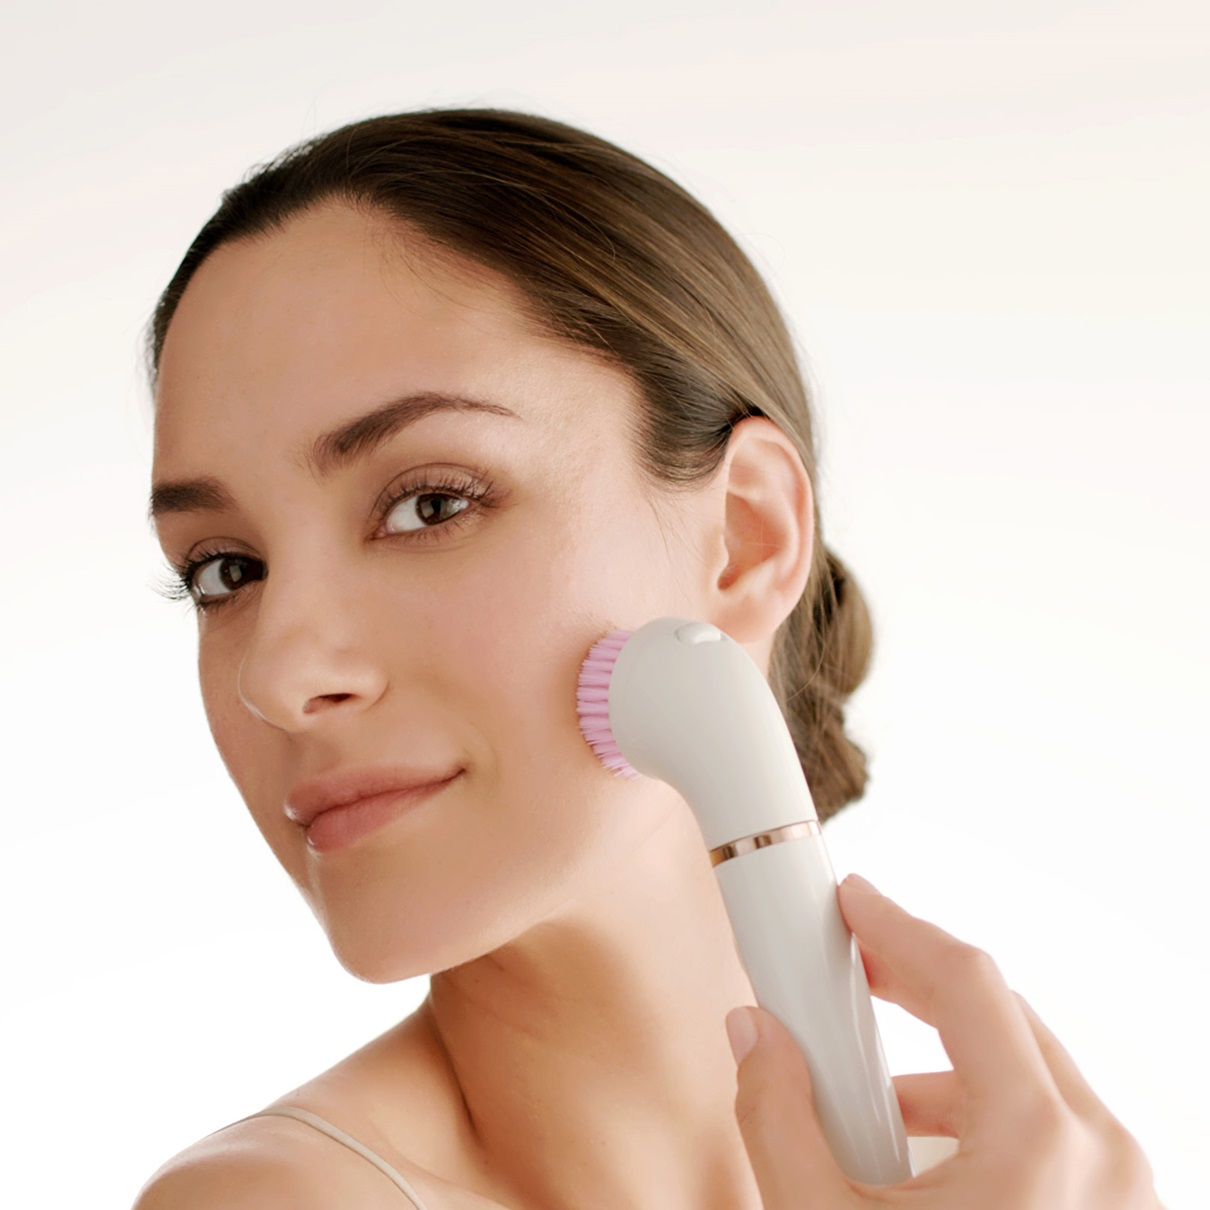 Braun FaceSpa Pro 921 - in use